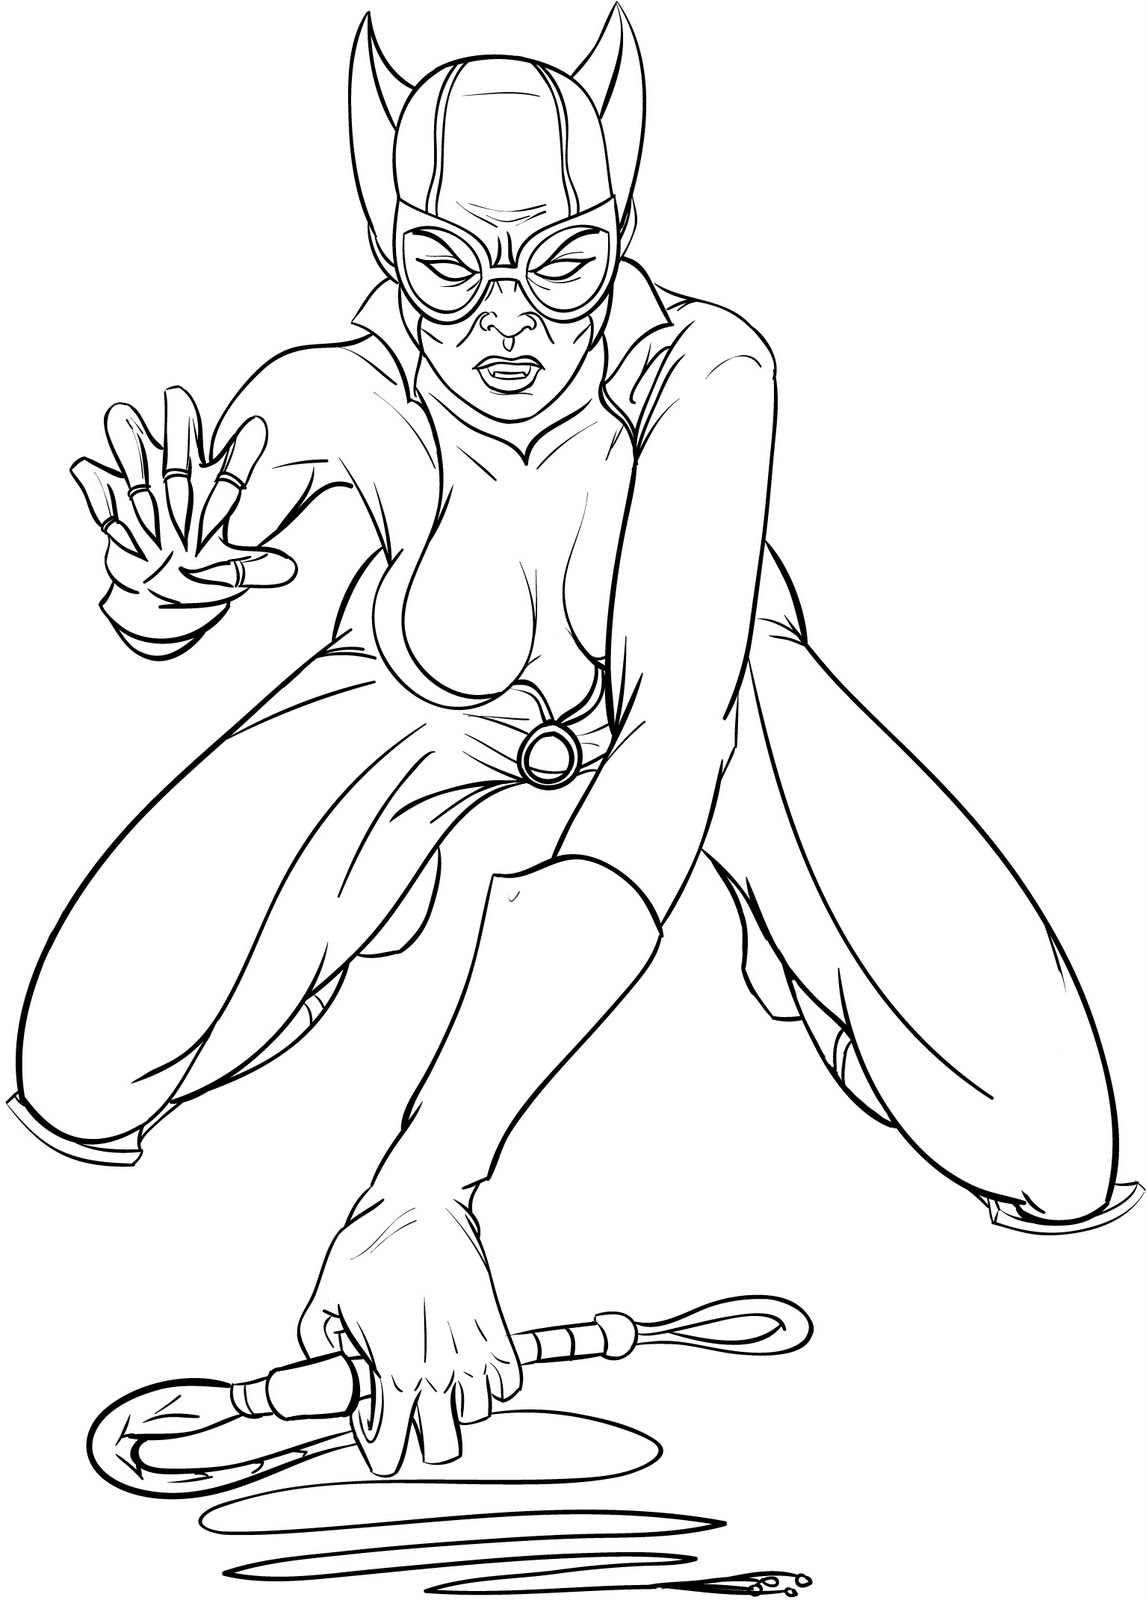 cat girl coloring pages cute anime cat girl coloring pages get coloring pages coloring girl cat pages